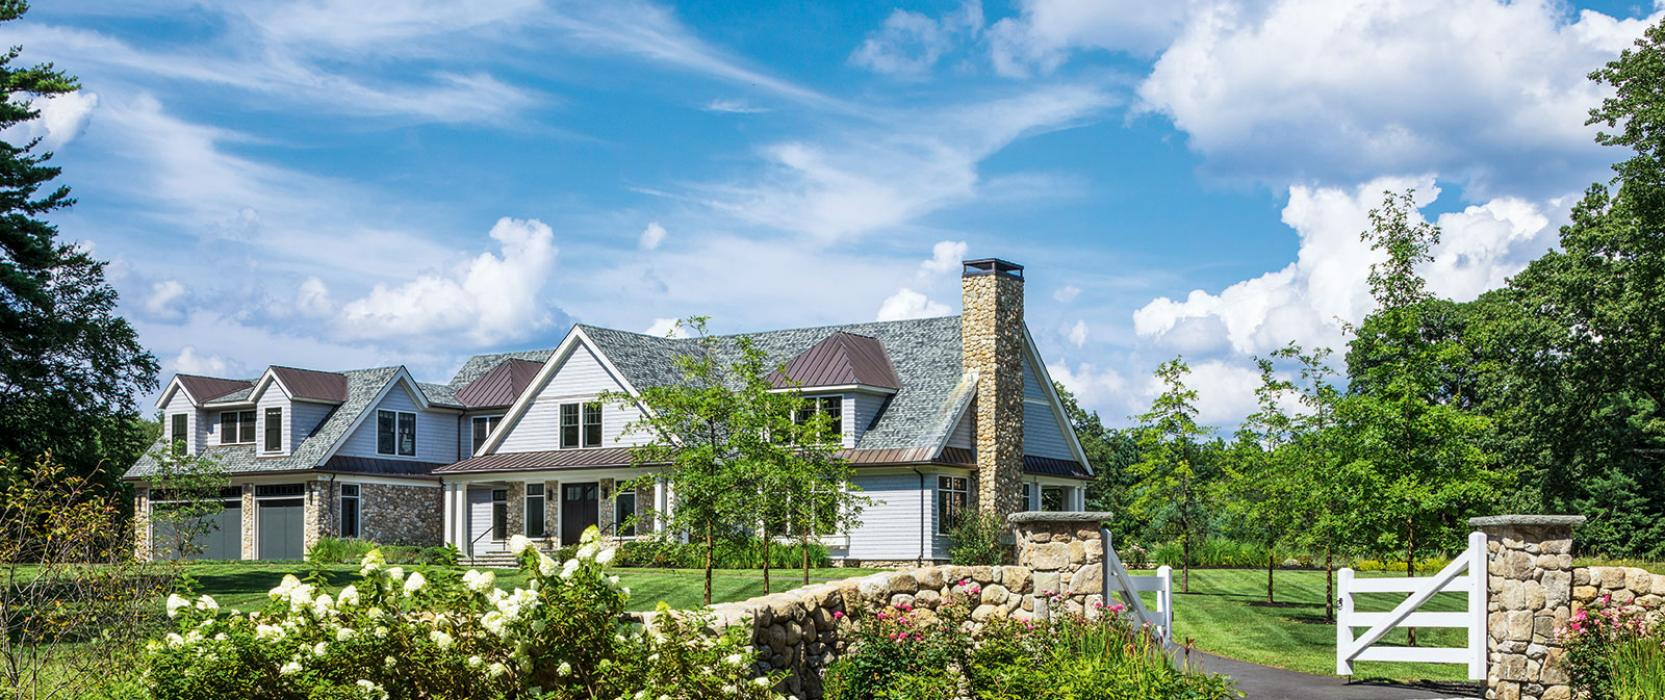 A New England escape designed for an equestrian